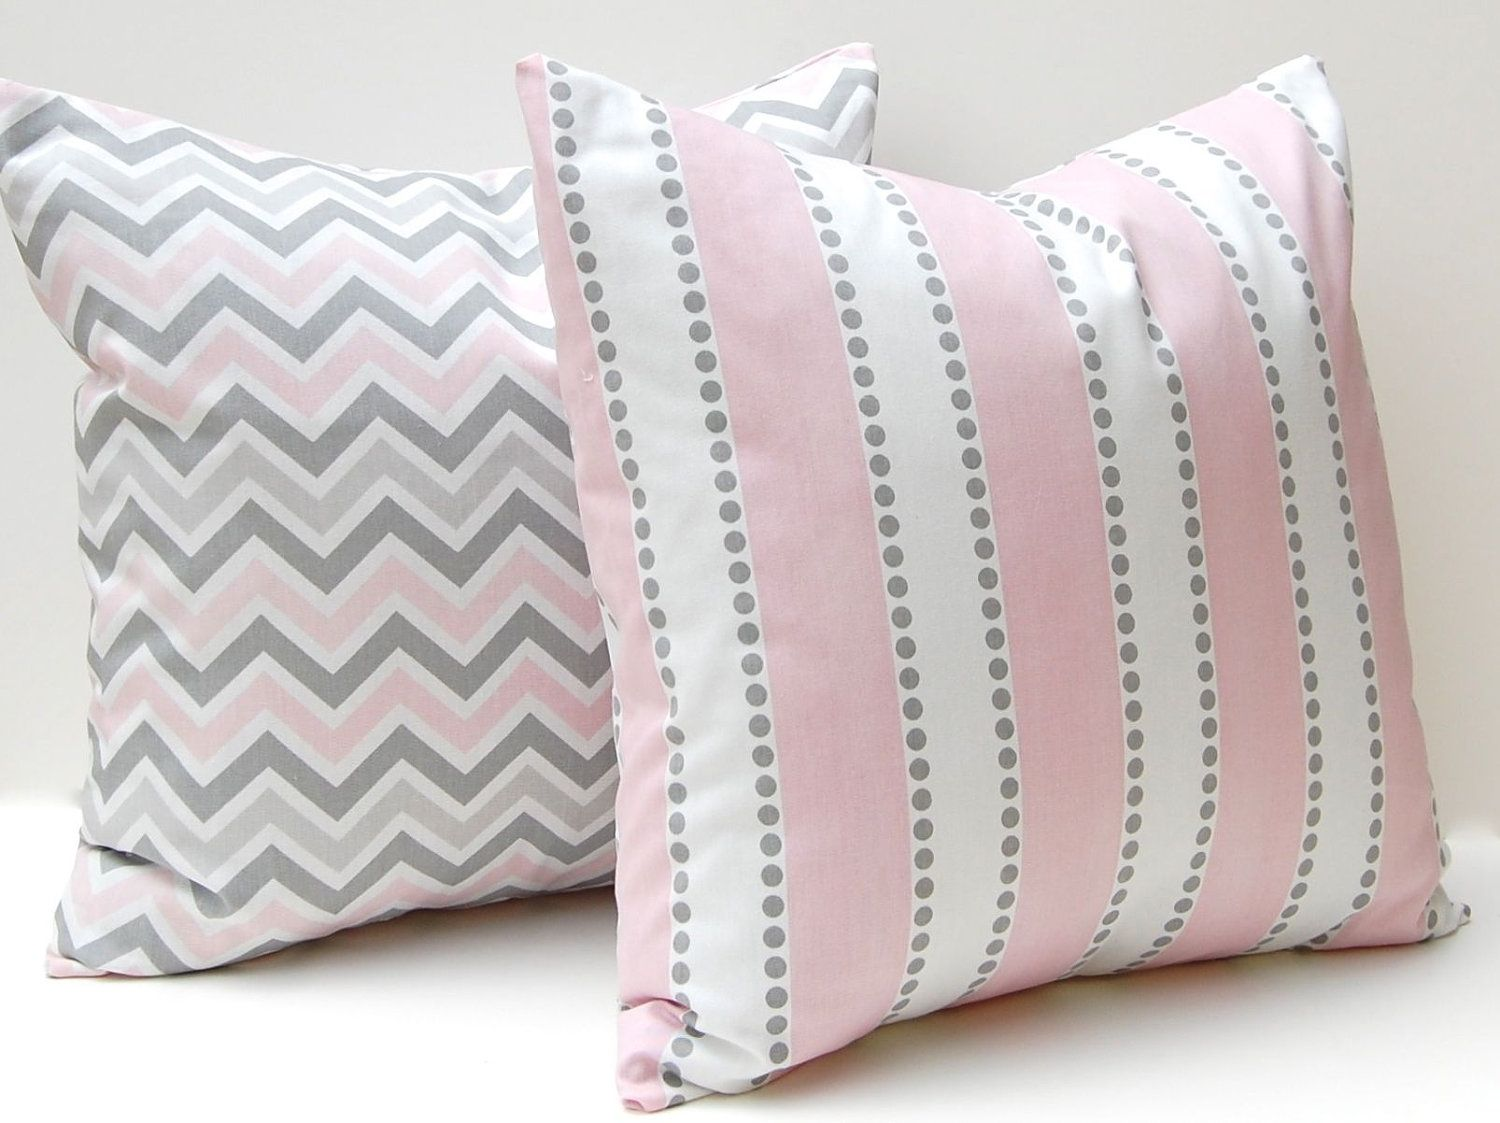 Pink And Grey Decorative Pillows : Chevron Pillow Decorative Throw Pillow Covers Baby Girl Nursery 18 x 18 Pink and Gray Chevron ...